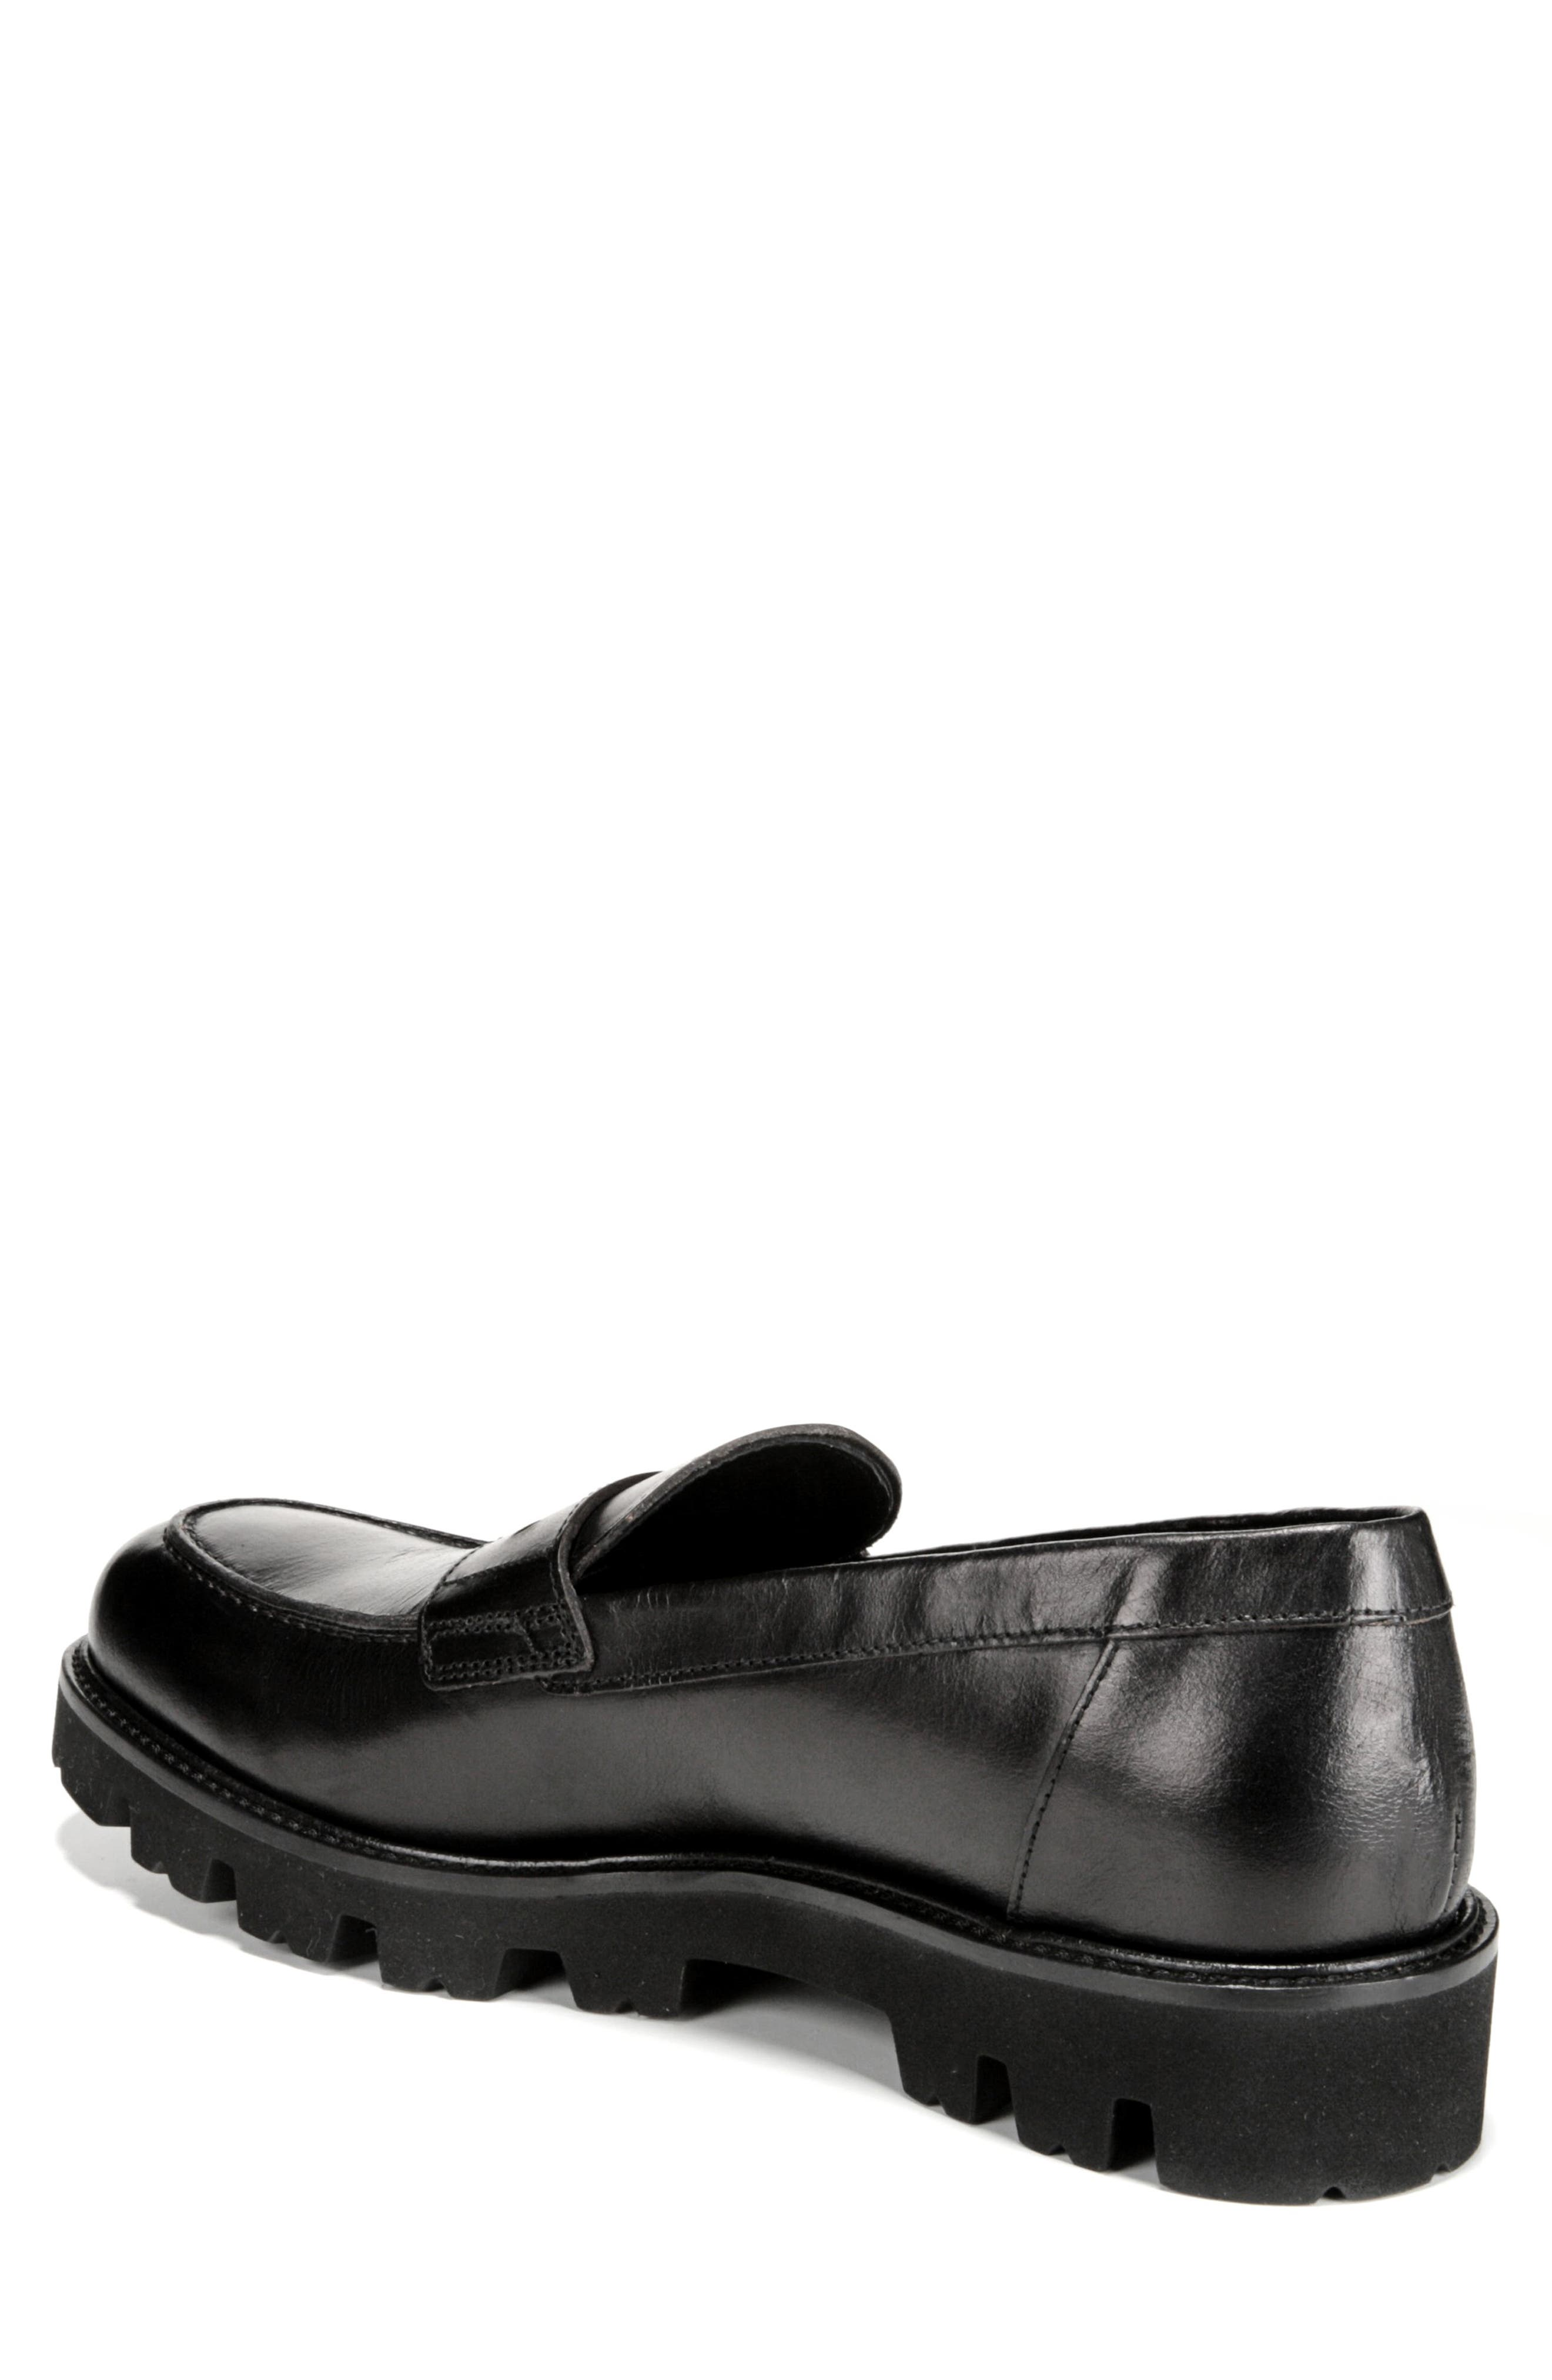 Comrade Loafer,                             Alternate thumbnail 2, color,                             BLACK